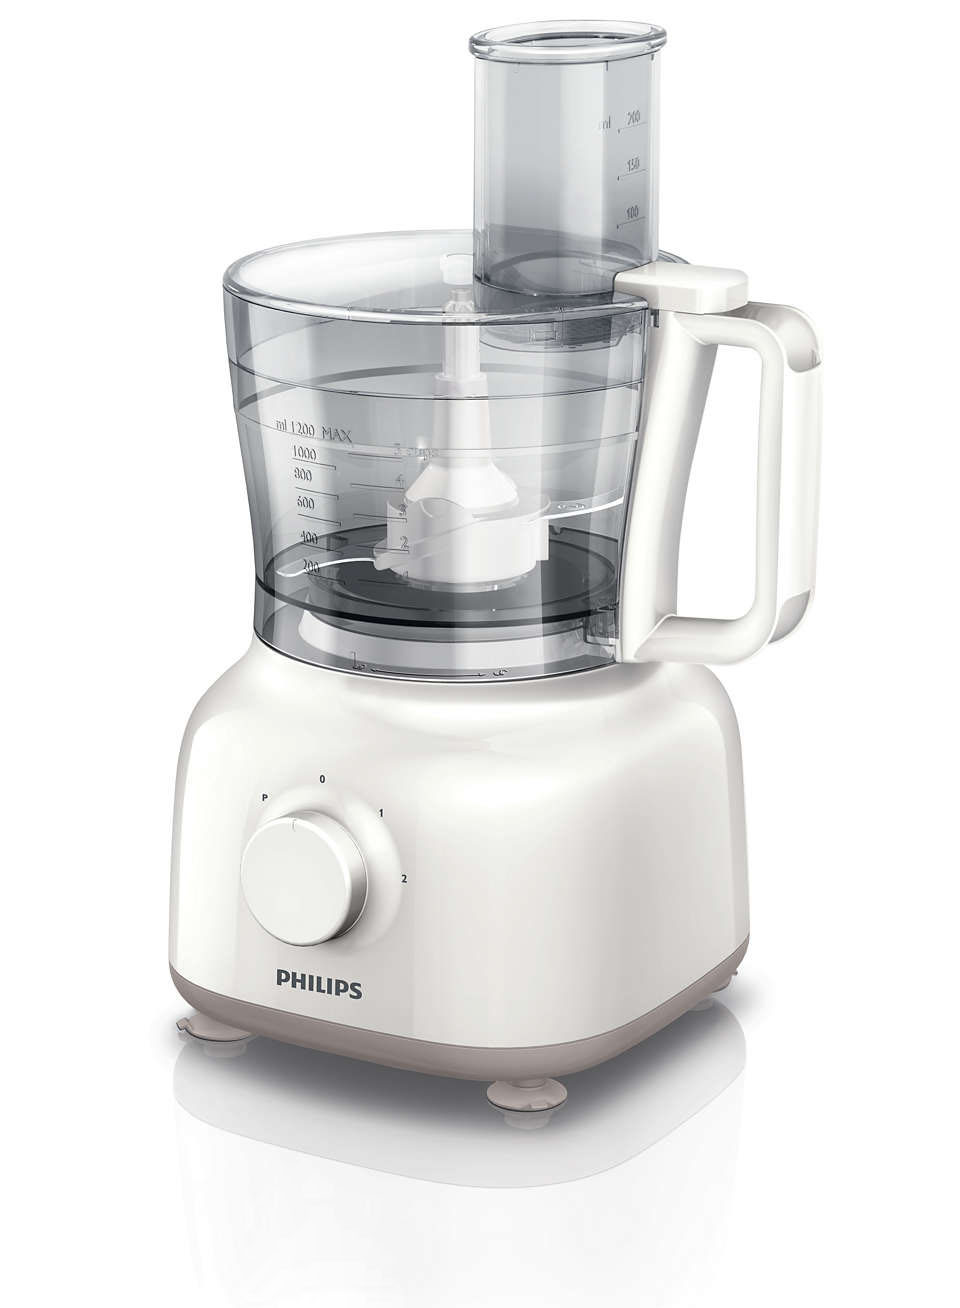 Best Food Processor For Meat Grinding